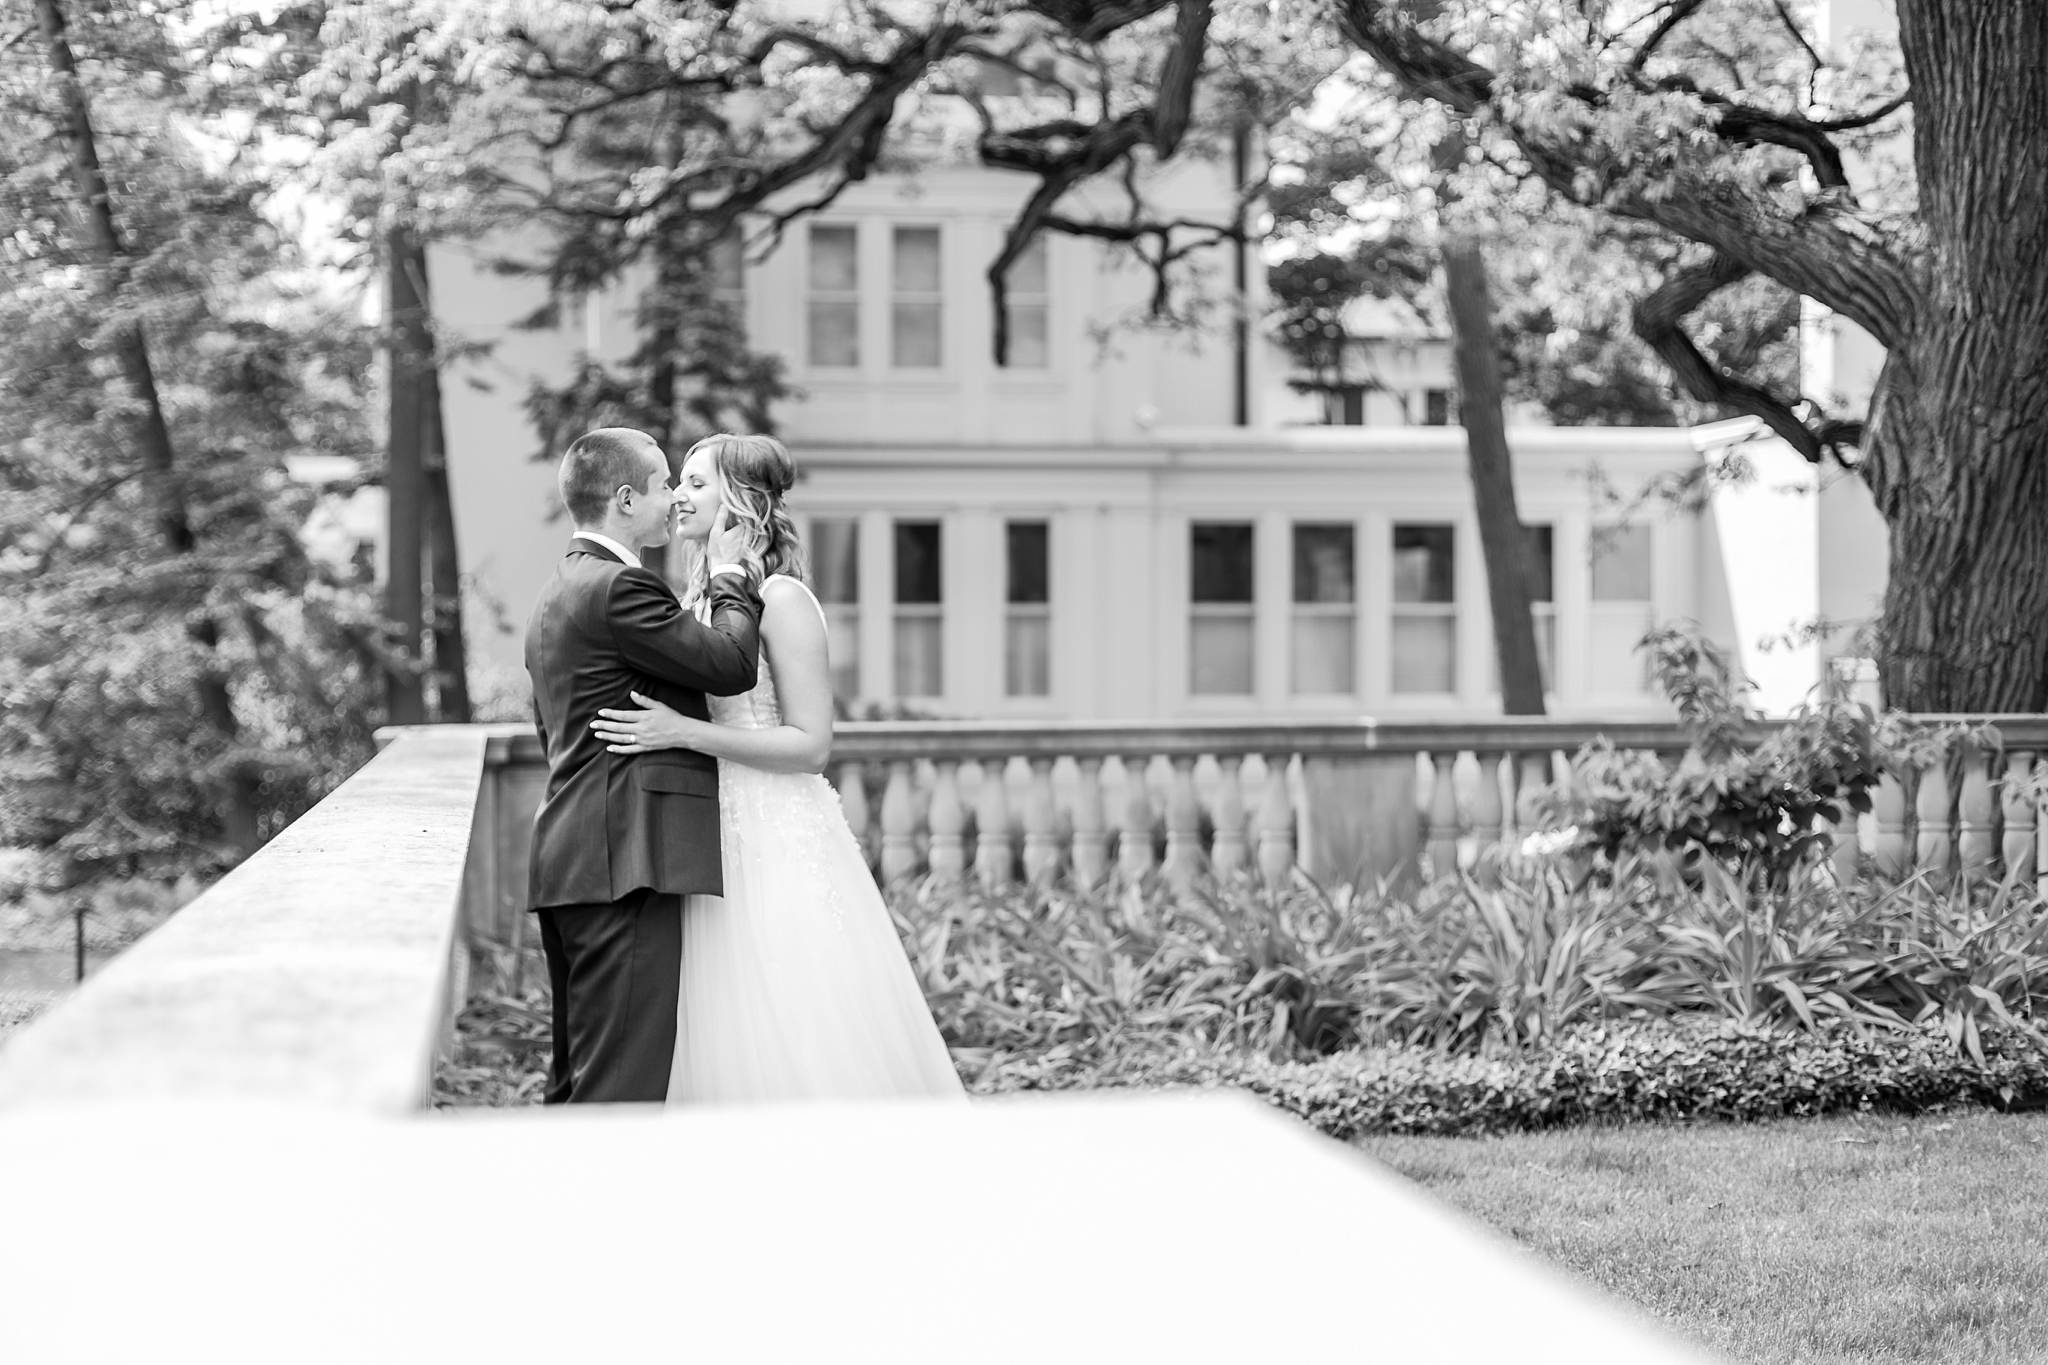 joyful-candid-laid-back-wedding-photos-in-ann-arbor-michigan-and-at-the-eagle-crest-golf-resort-by-courtney-carolyn-photography_0065.jpg